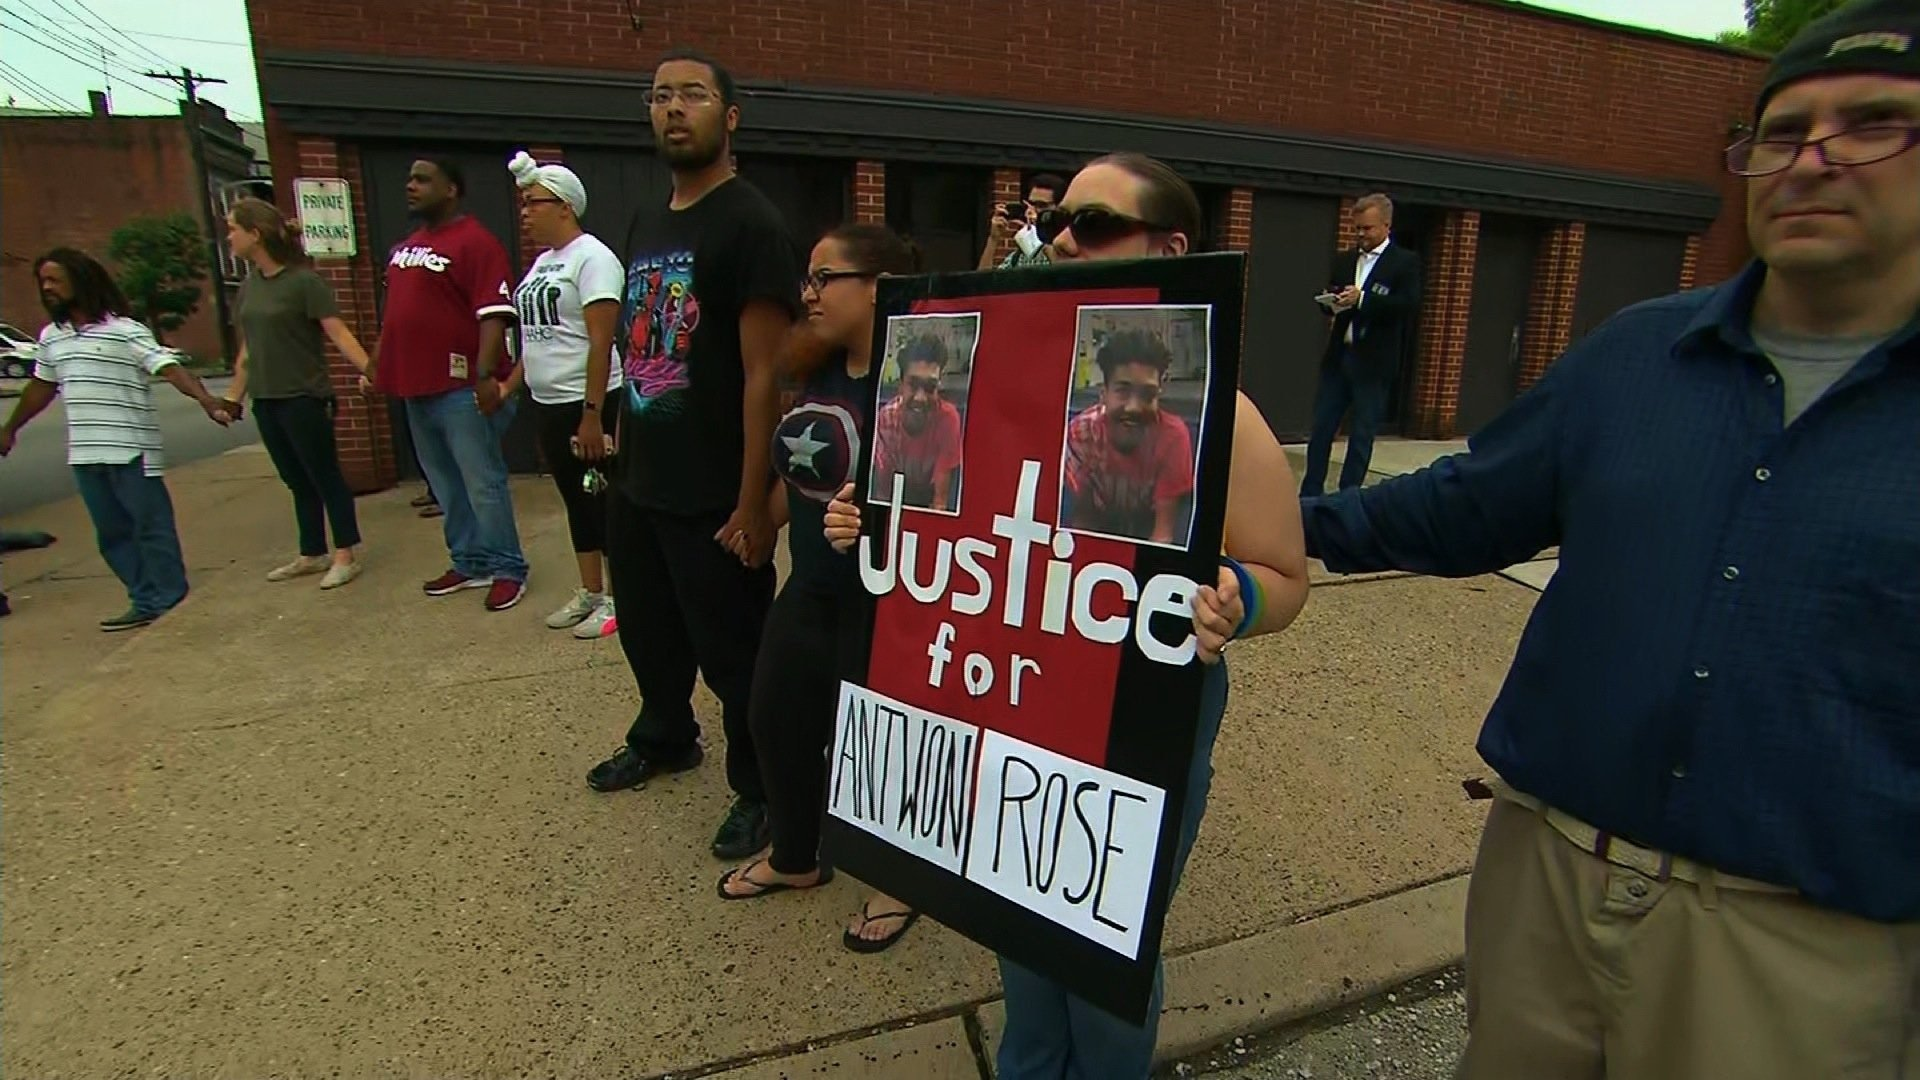 Protestors in Pennsylvania asked on Thursday for justice for Antwon Rose, the 17-year-old who was fatally shot by an East Pittsburgh police officer during a traffic stop on Tuesday.